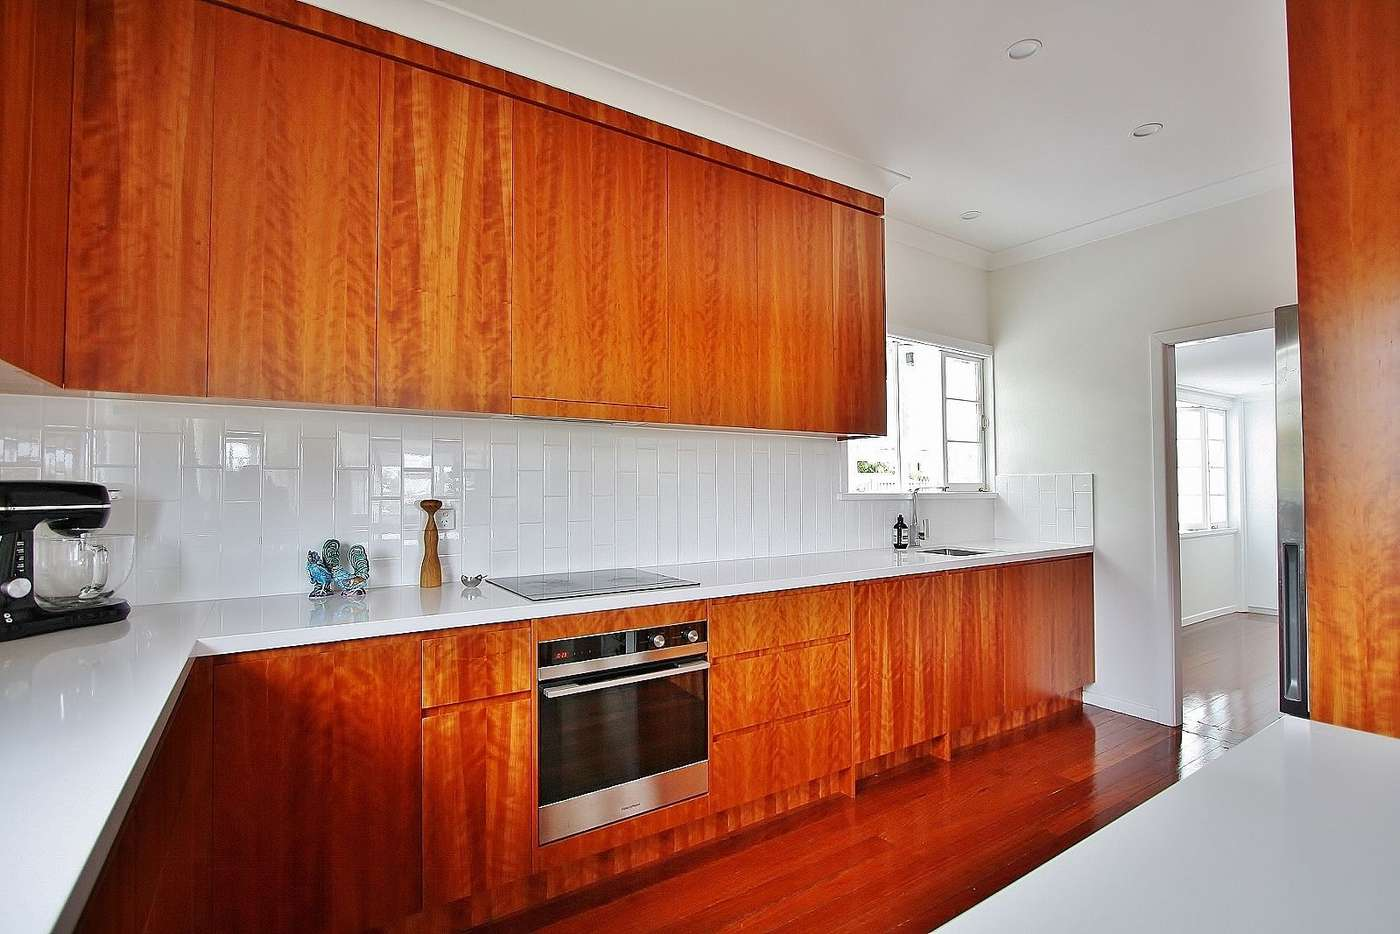 Seventh view of Homely house listing, 4 Avesnes Street, Holland Park QLD 4121